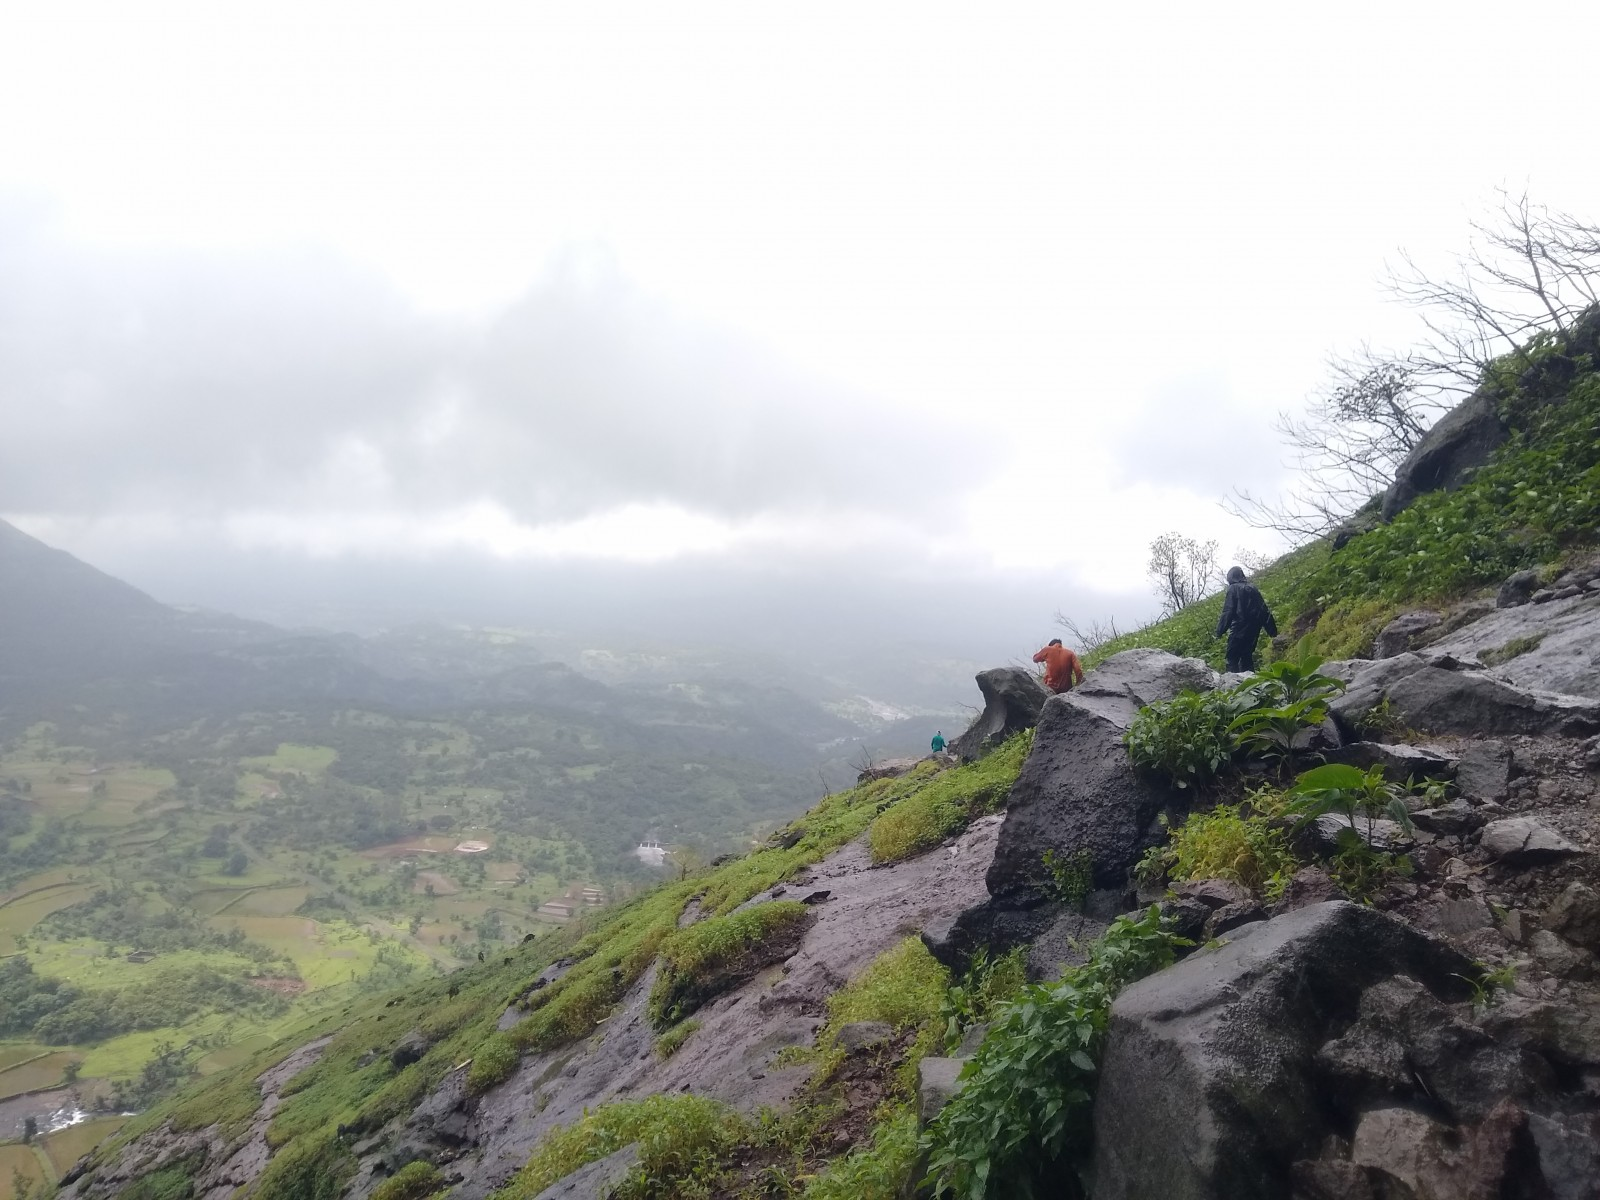 Trekking Camping Mumbai Harishchandragad Maharashtra Adventure Travel The Great Next